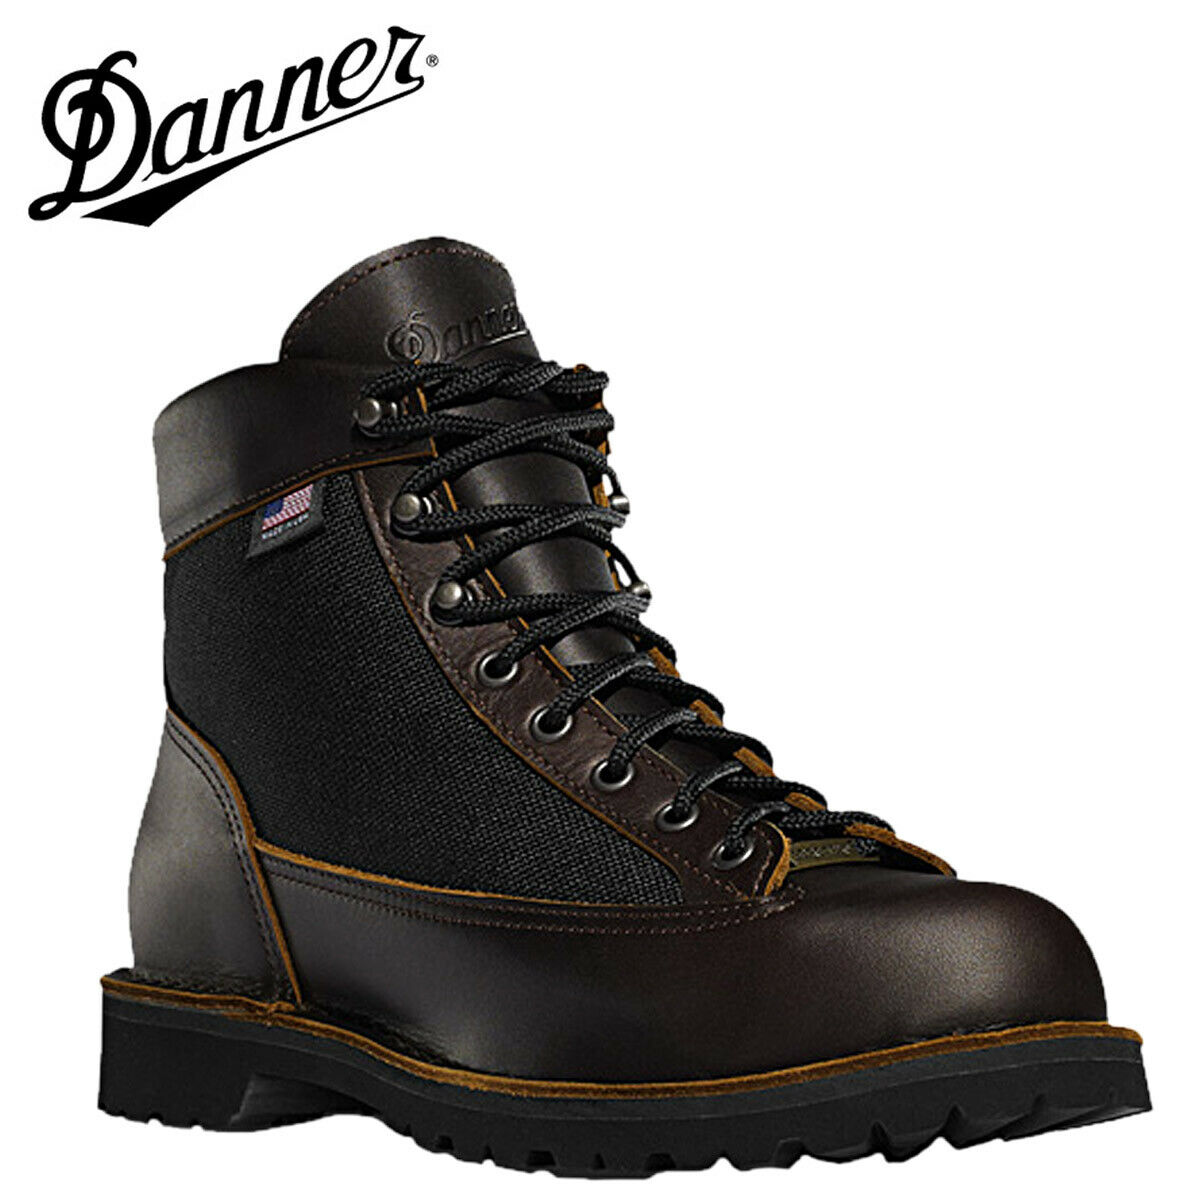 DANNER 30447 Light Woodlawn (Hand Crafted, Light Weight Vibram Outsole)